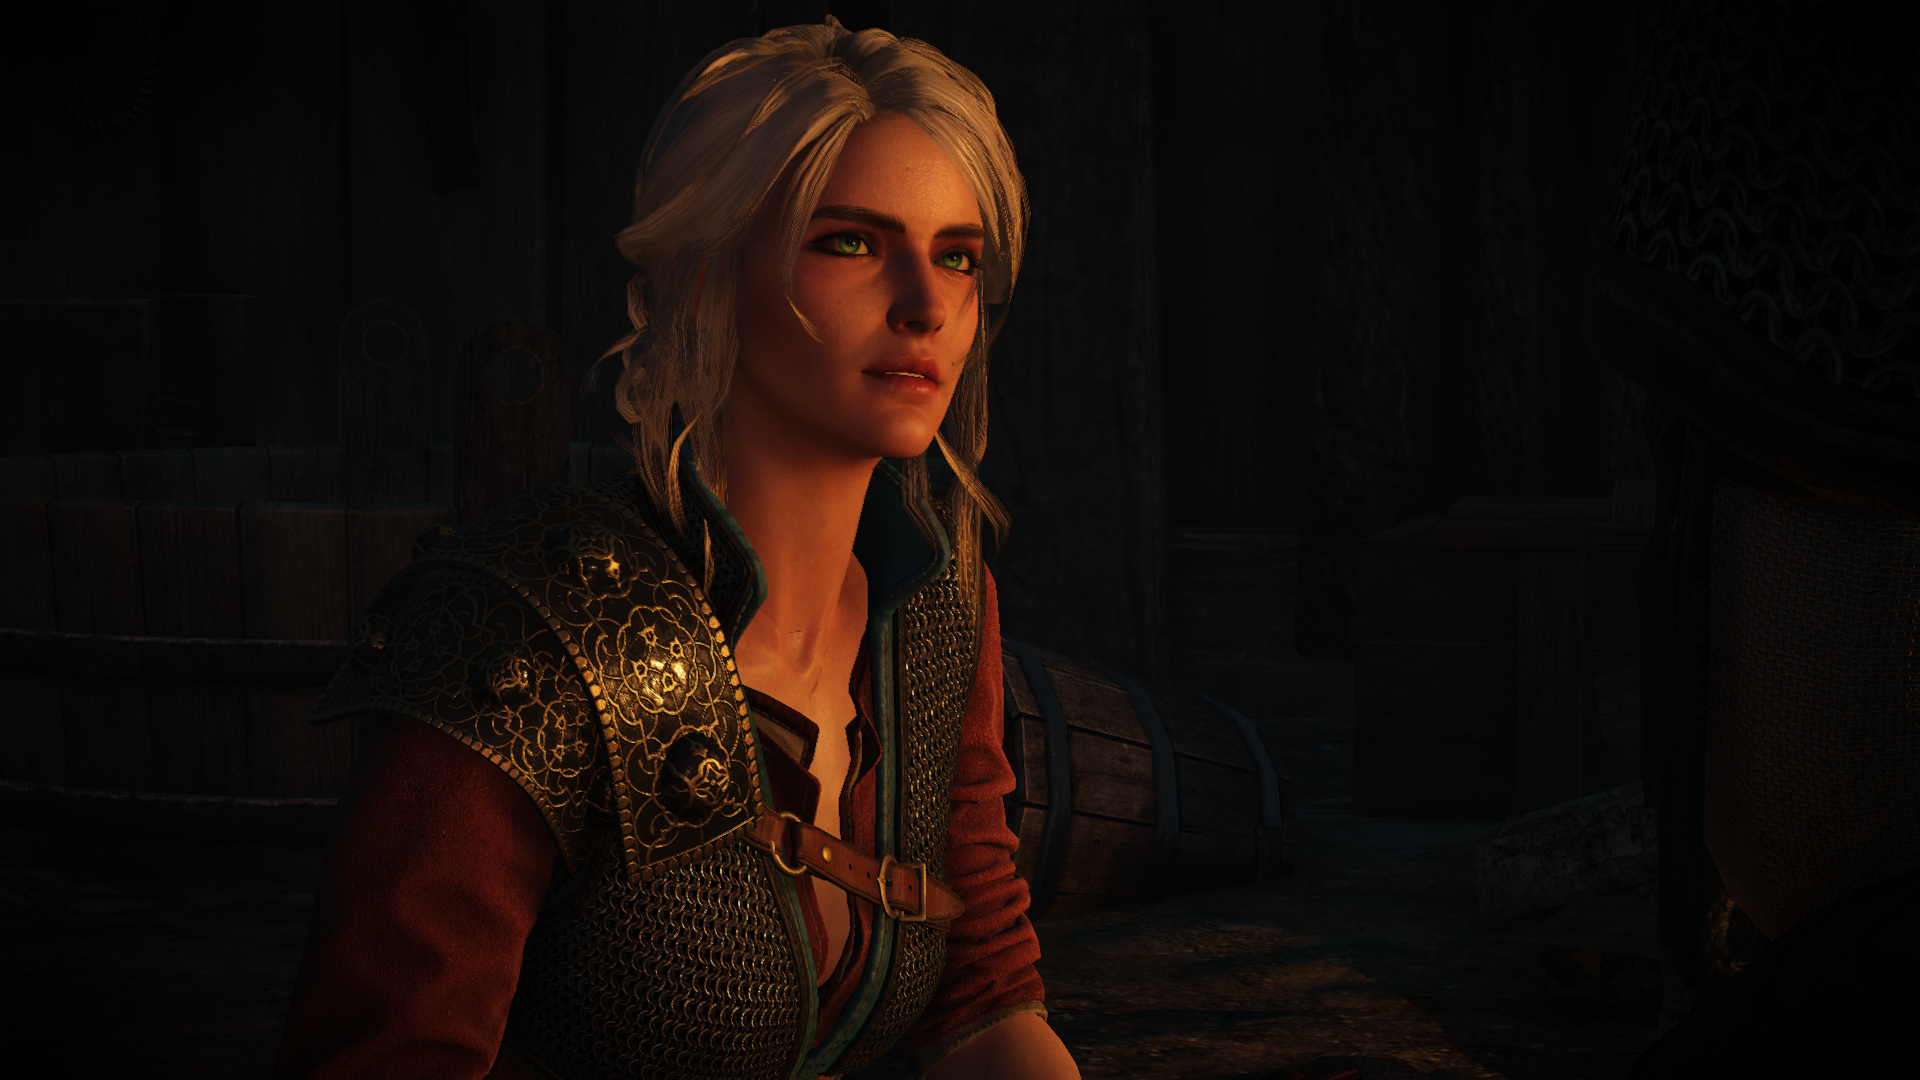 The Witcher 3 13.08.2019 18_53_24.png - Witcher 3: Wild Hunt, the